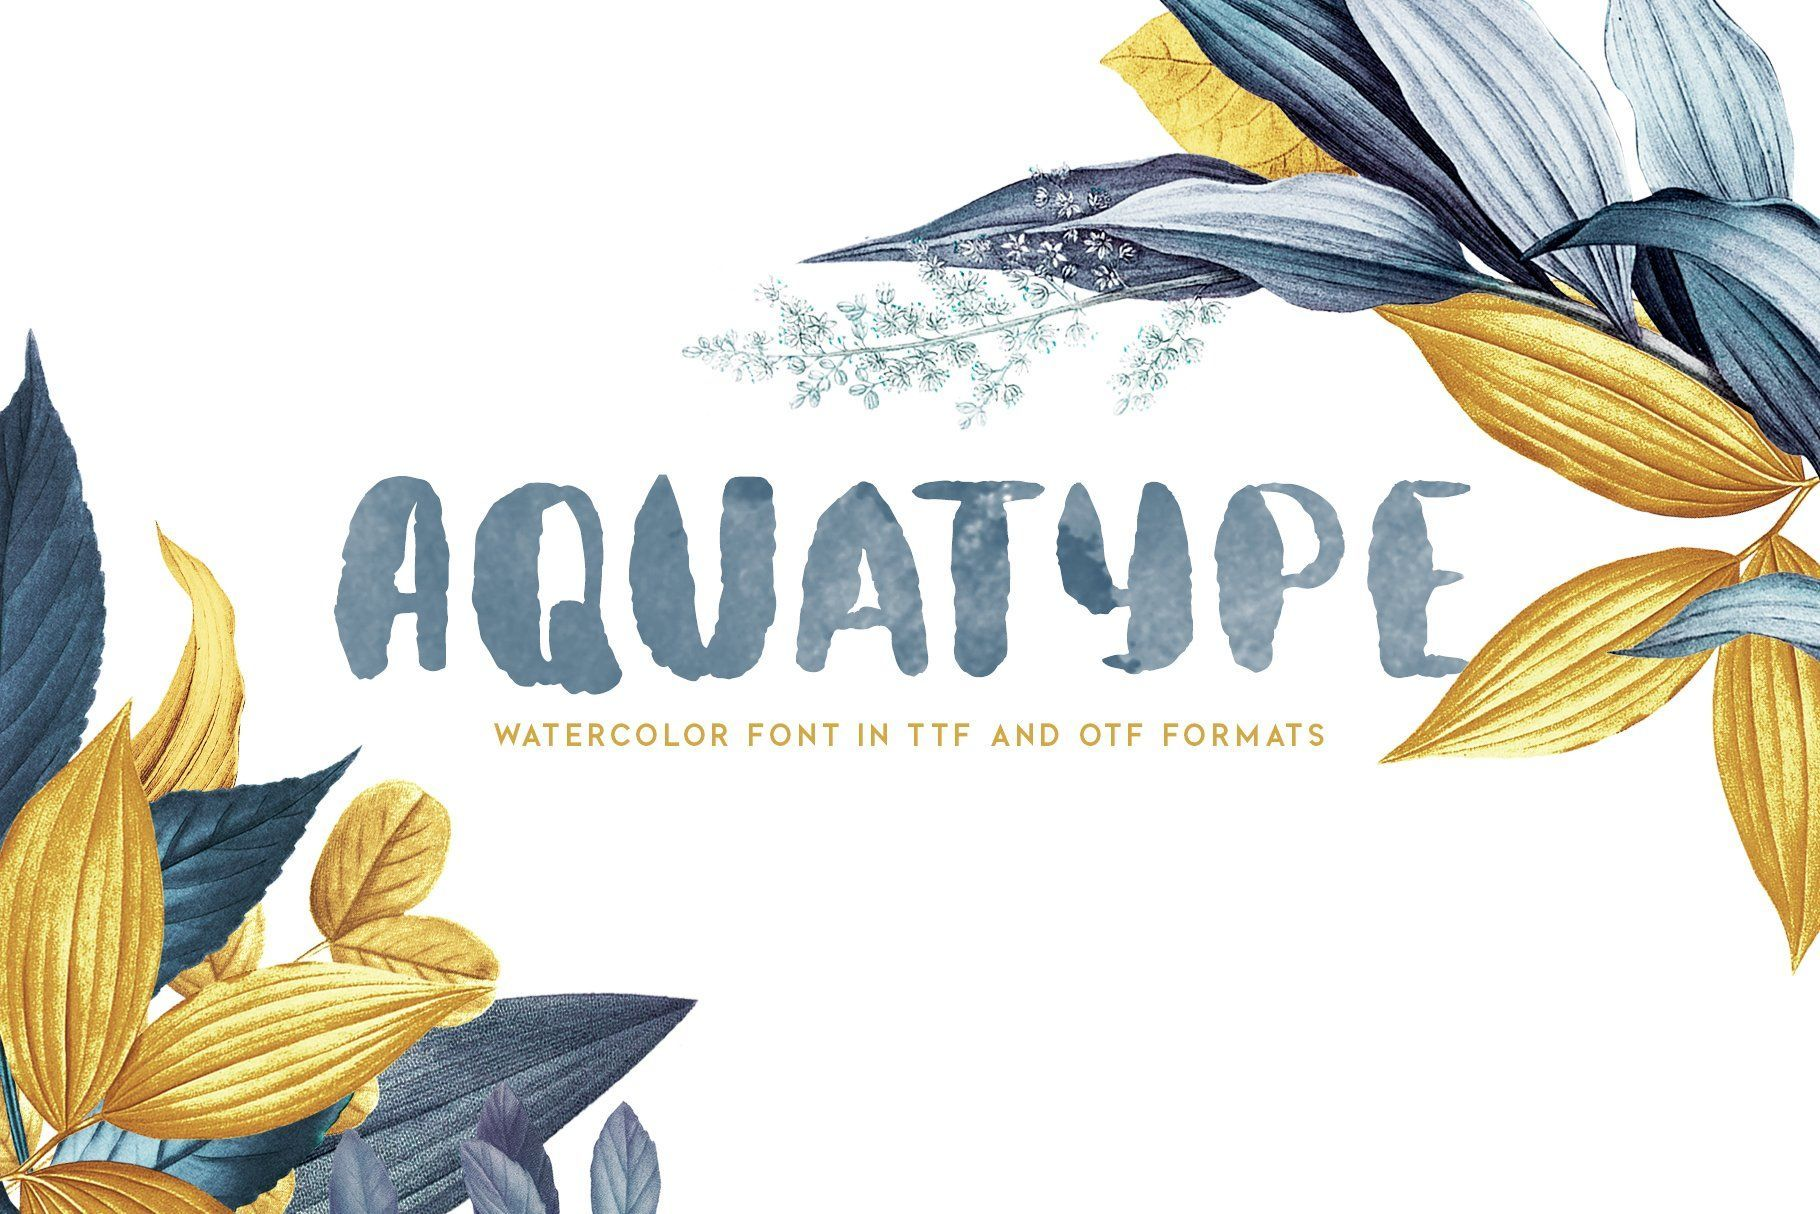 Aquatype Display Watercolor Font Sans Serif Watercolor Lettering